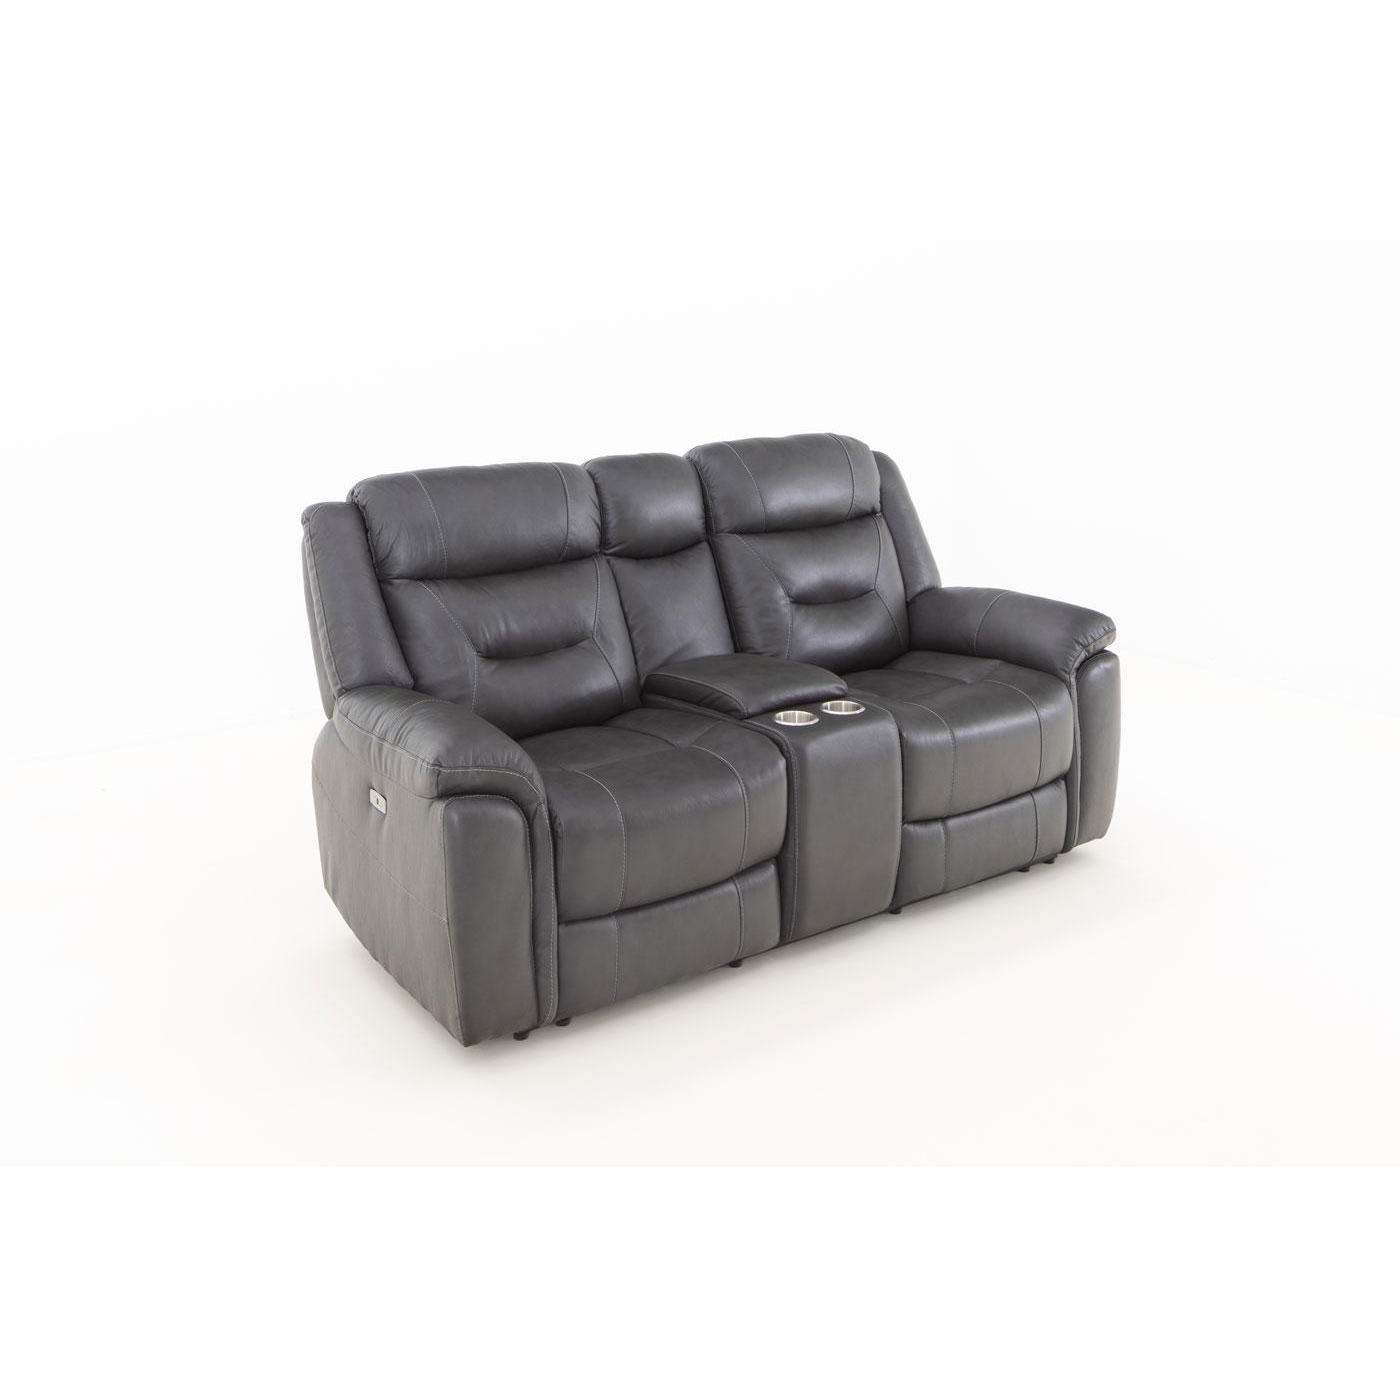 Starry Power Loveseat with Console